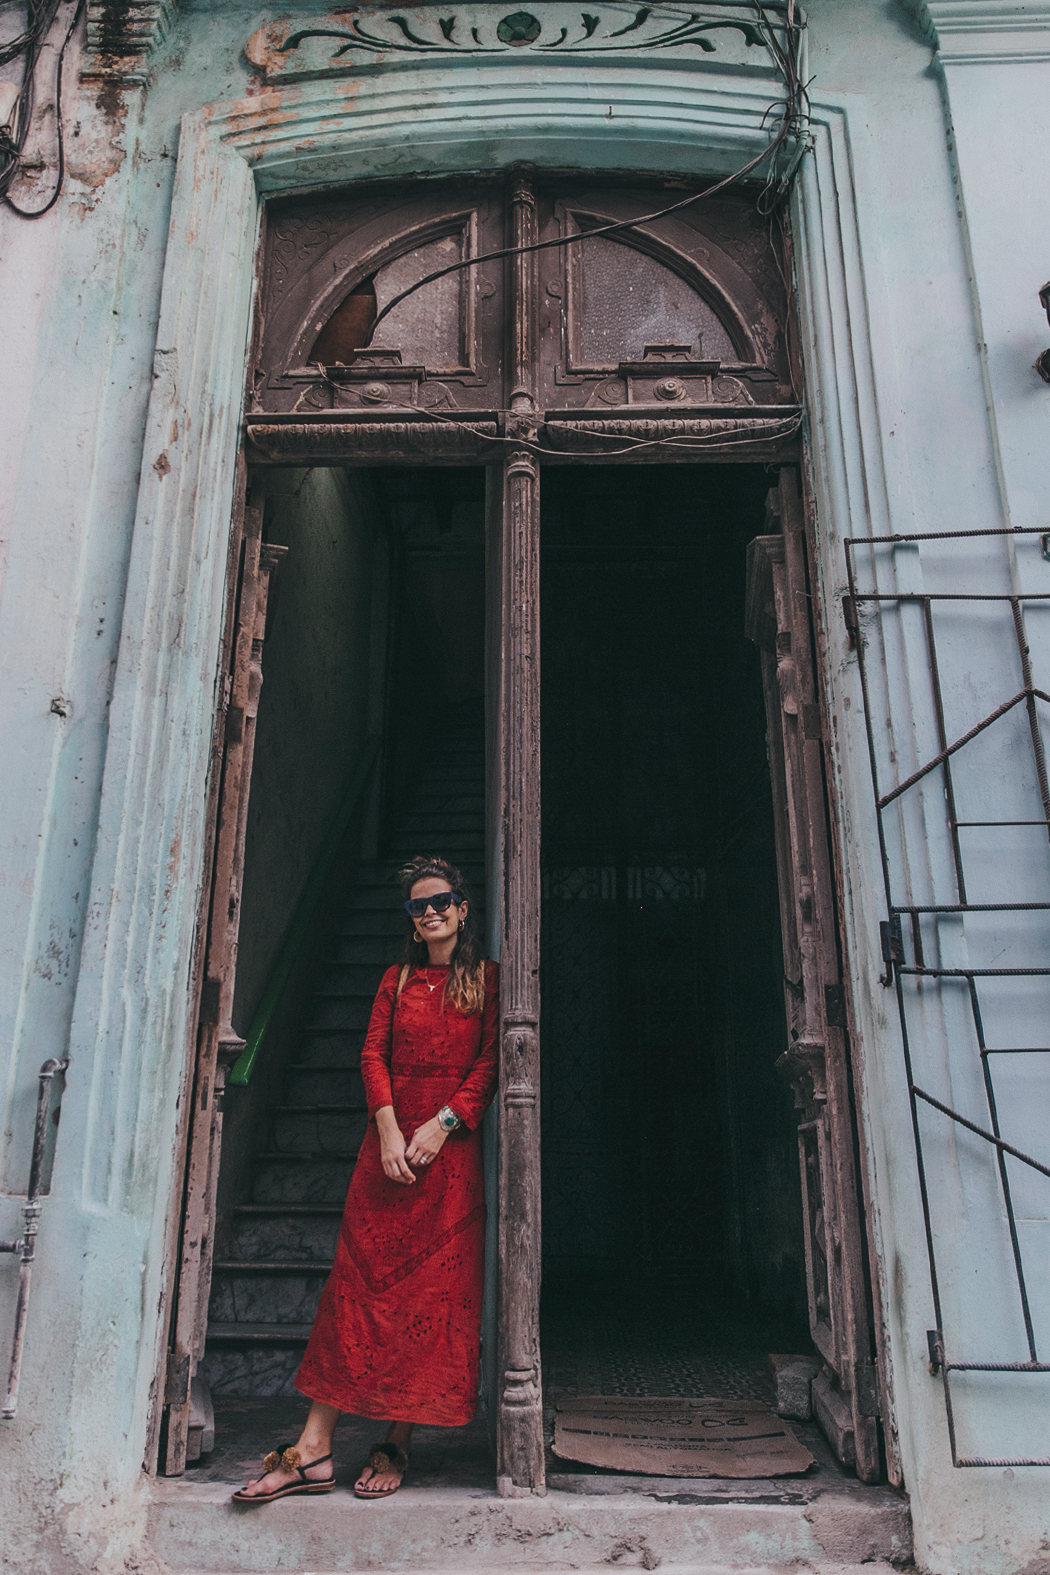 Cuba-La_Habana_Centro-Red_Dress-PomPom_Sandals-Backpack-Sreetstyle-Half_Knot_Hairstyle-Outfit-10